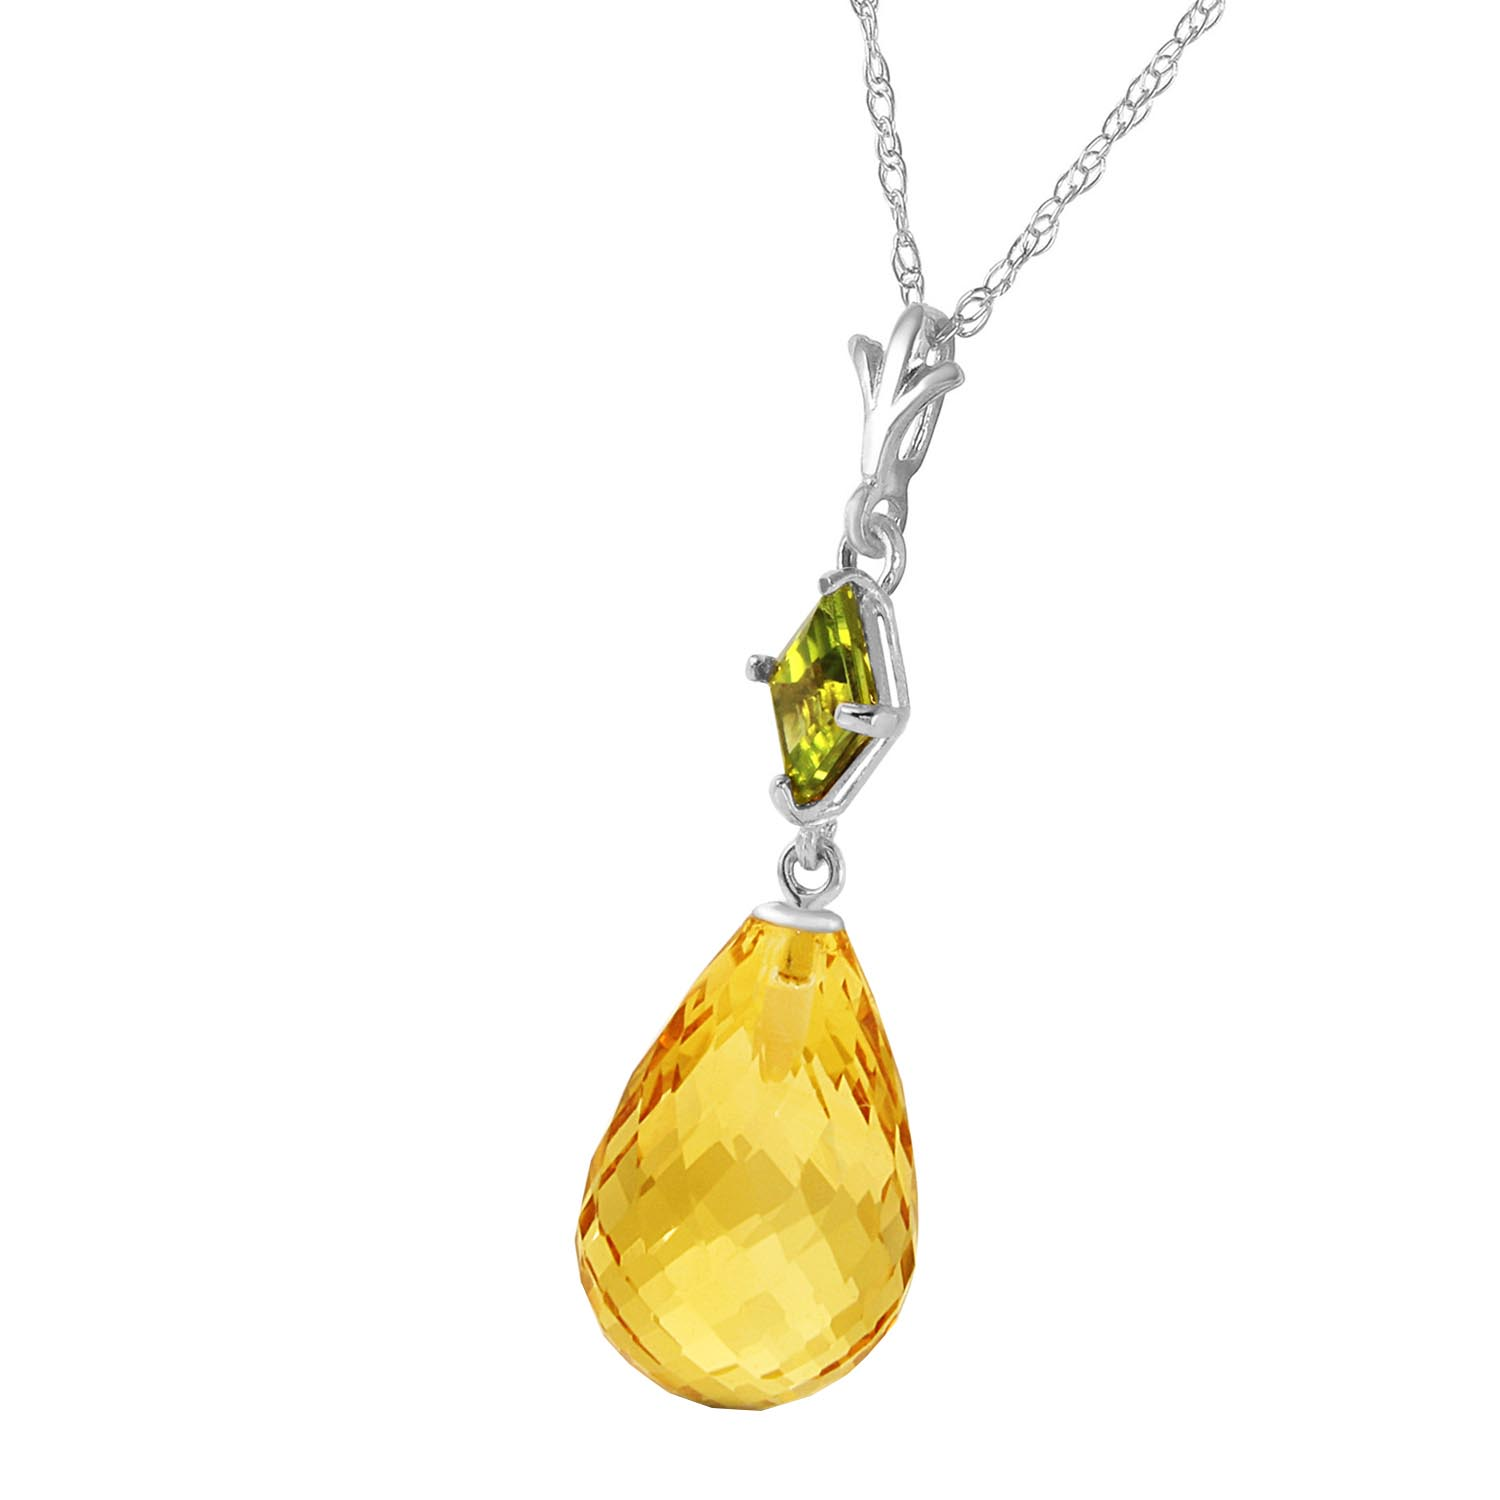 Citrine and Peridot Pendant Necklace 5.5ctw in 14K White Gold